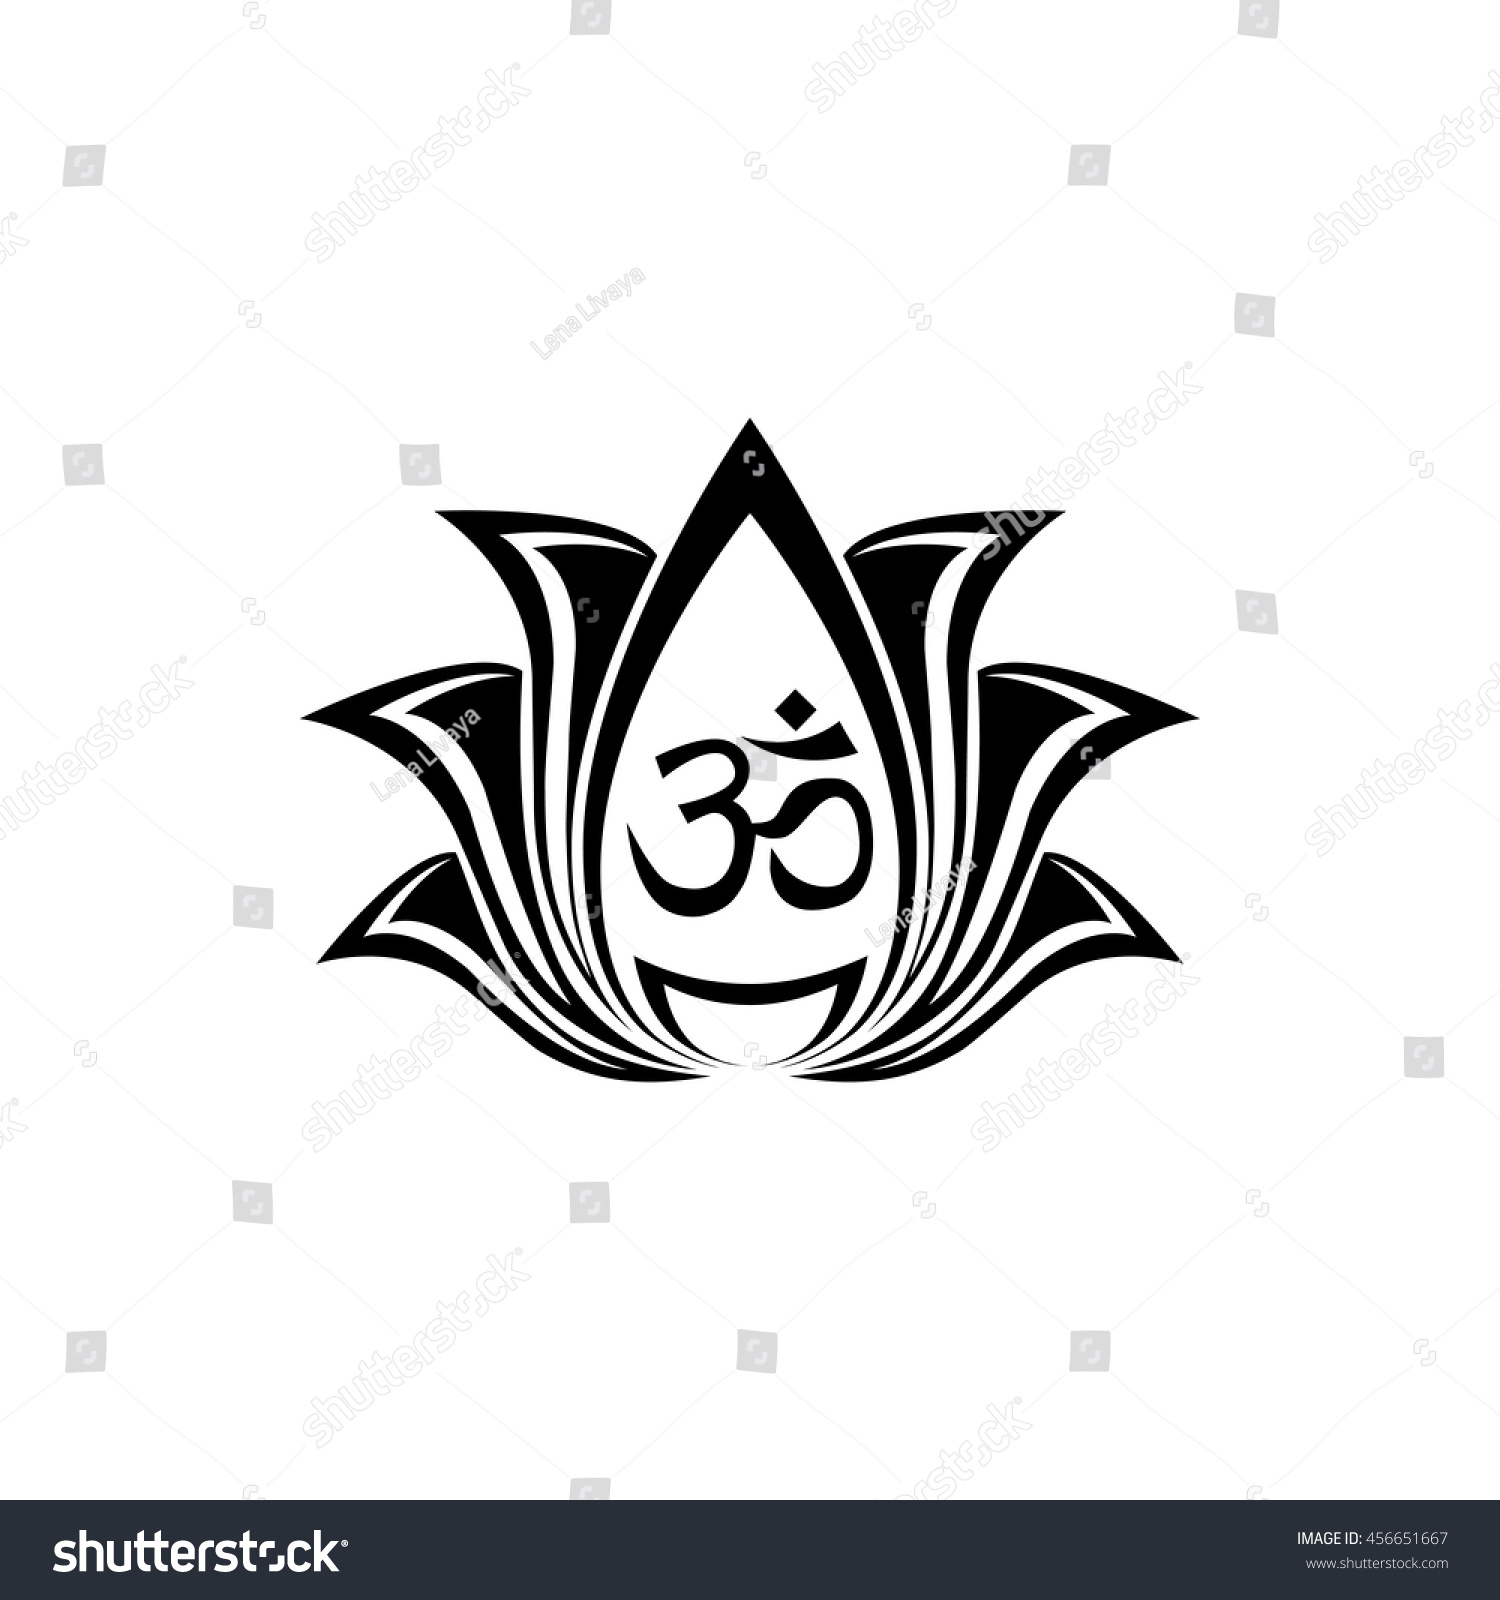 Abstract Vector Lotus Flower Silhouette Design Stock Vector Royalty